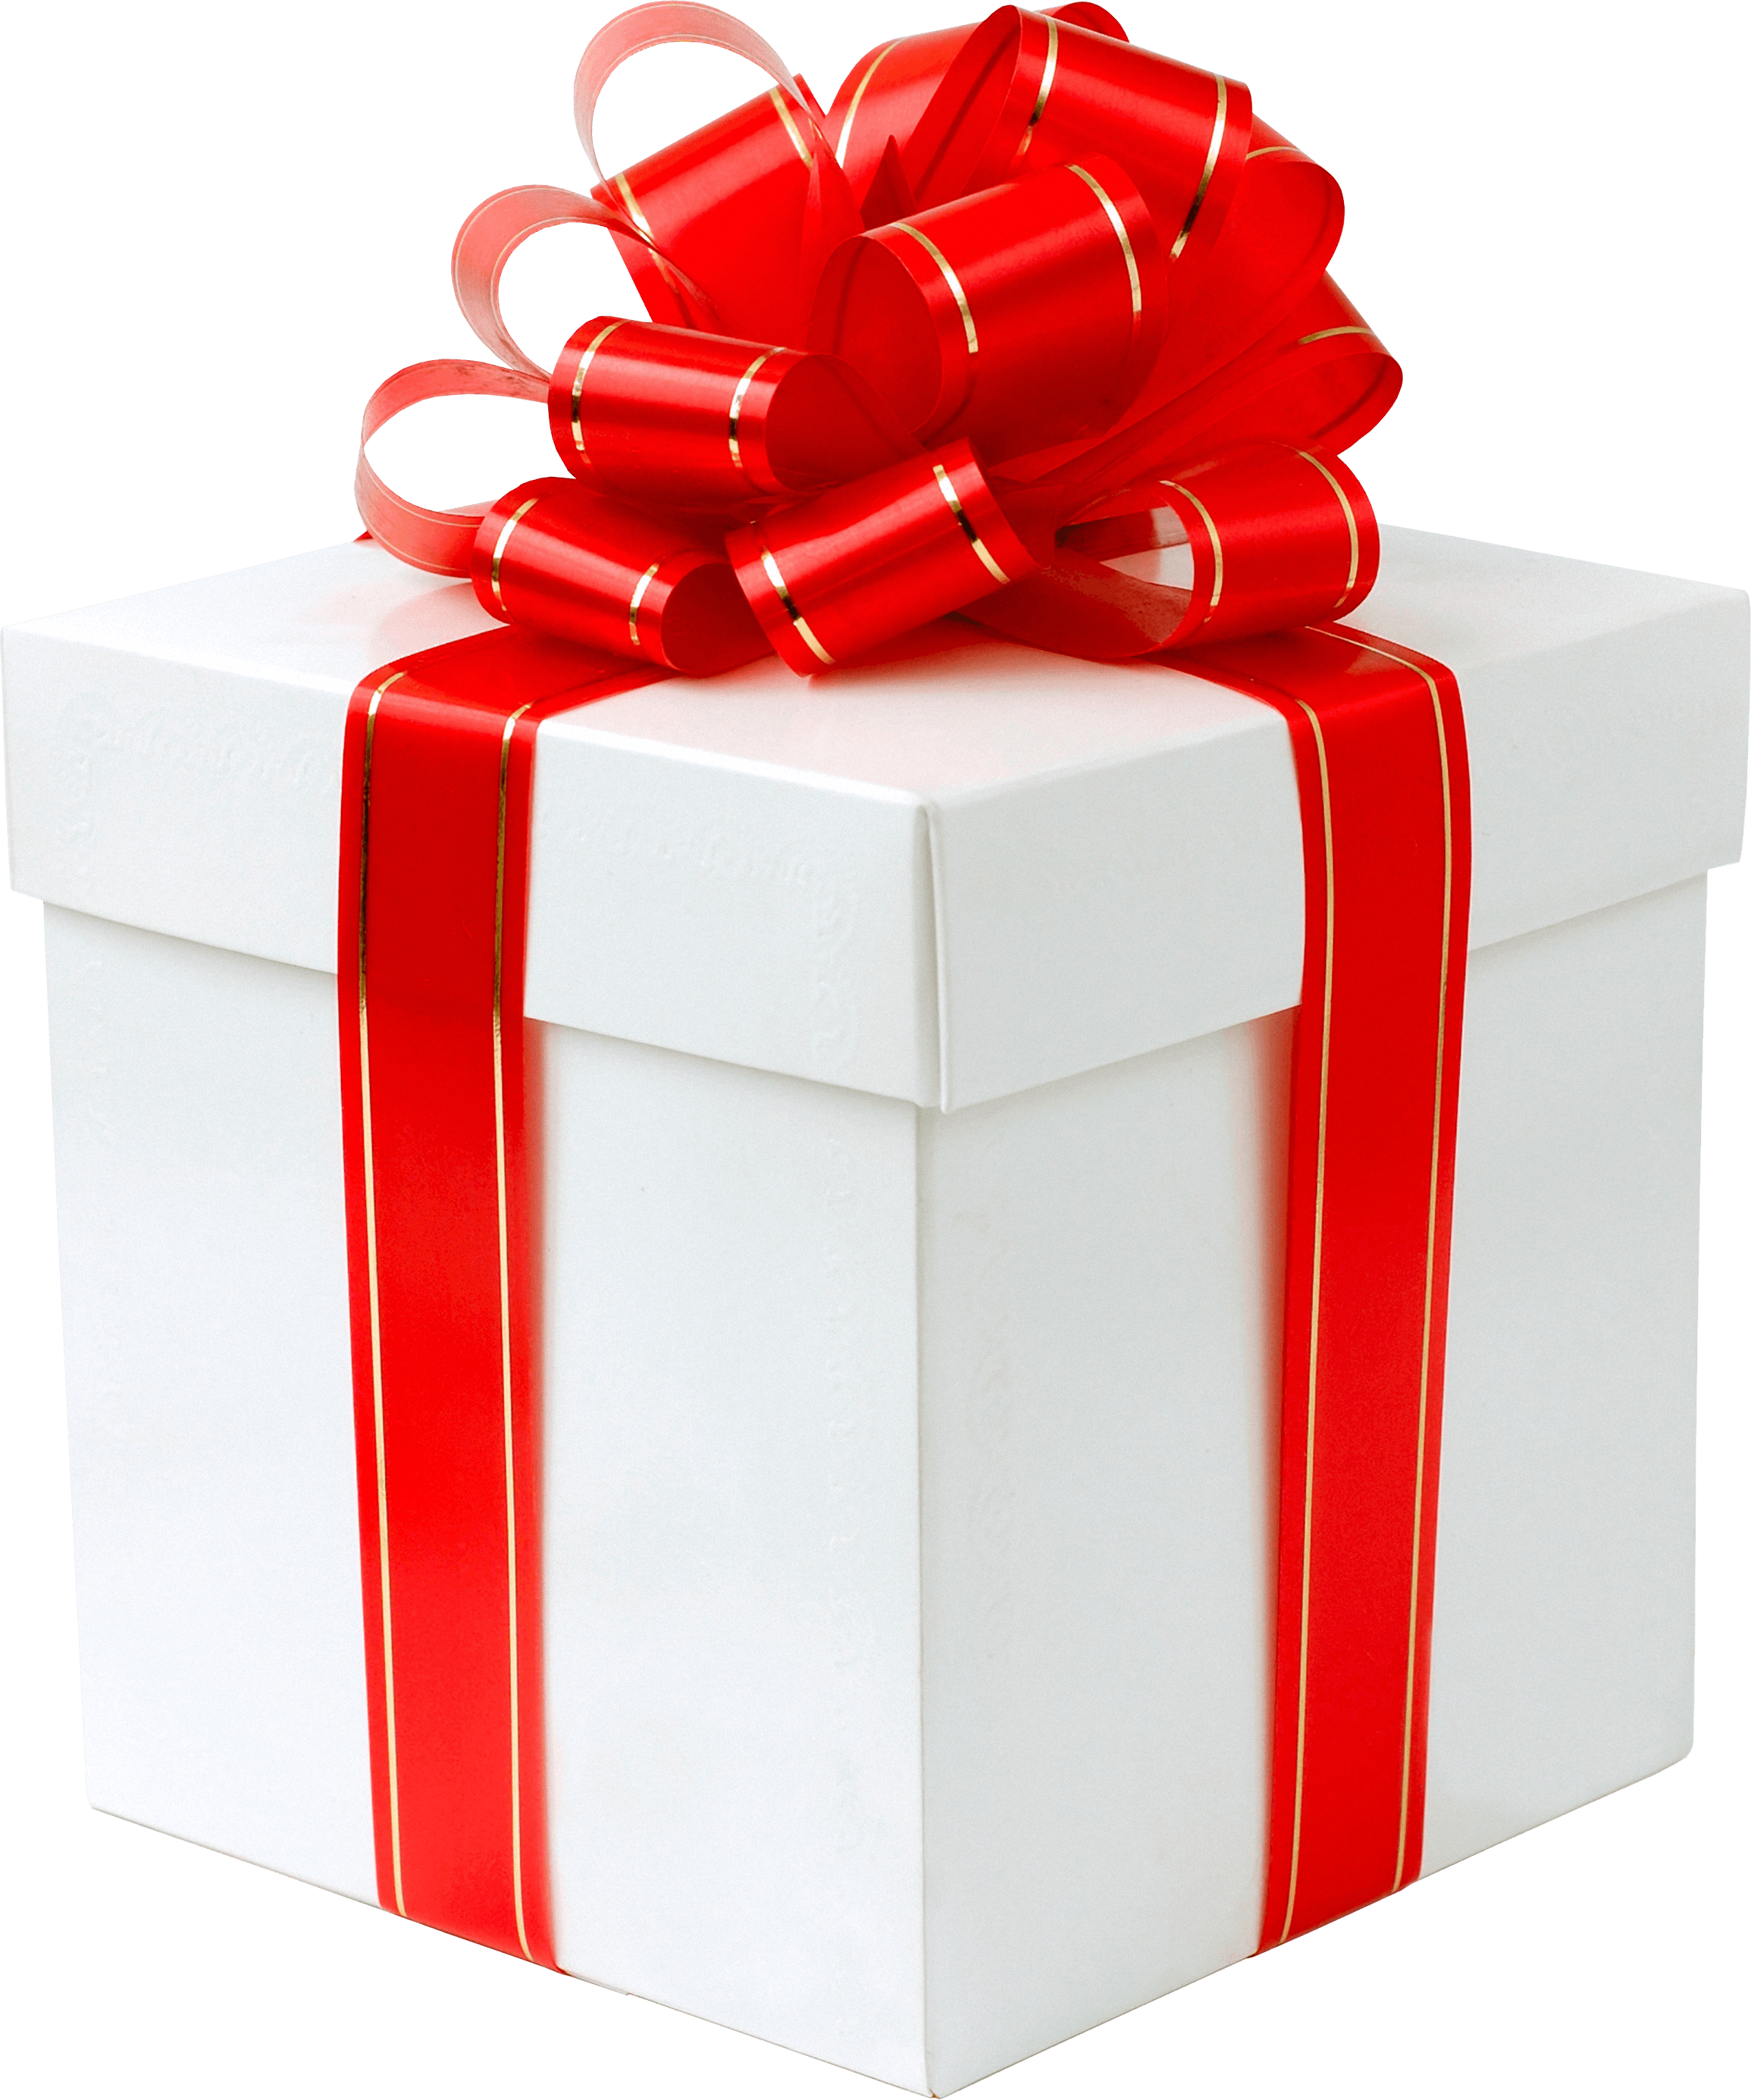 A Gift PNG - 158799